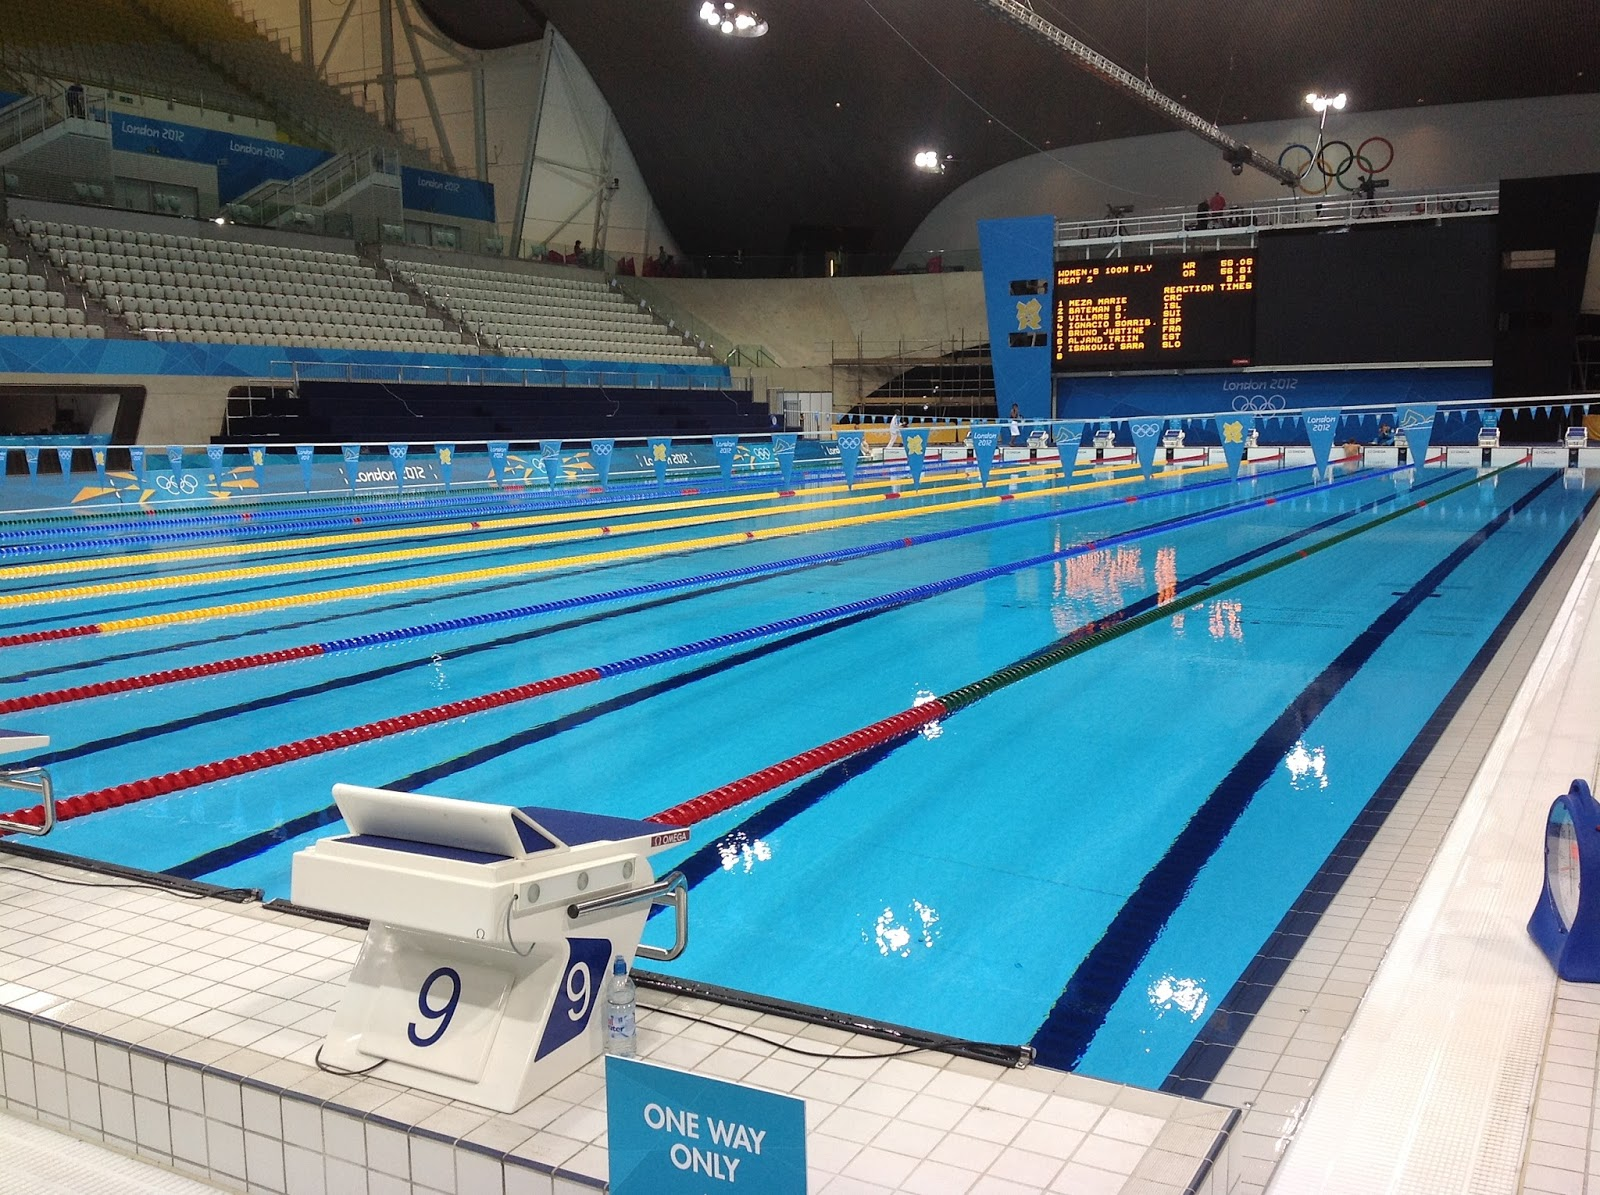 olympic swimming pool 2012 olympic swimming pool 2012 - Olympic Swimming Pool 2012